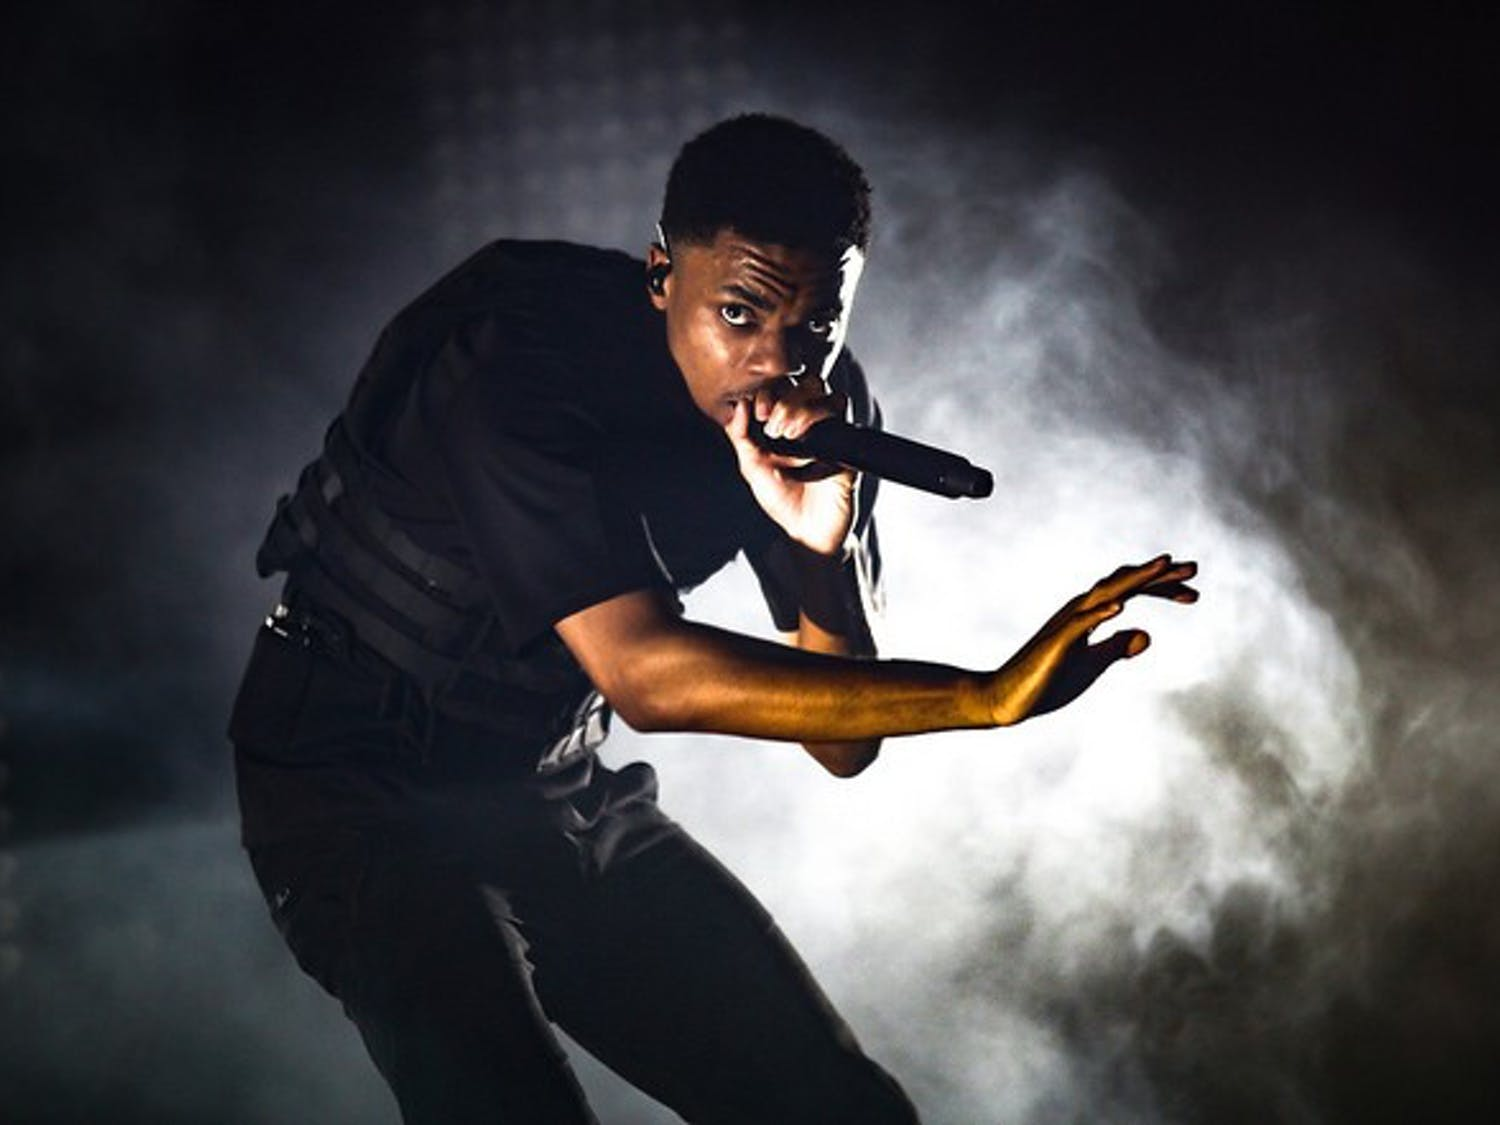 Vince Staples will perform at the Center for the Arts on Friday, Sept. 21 according to the rapper's website. A CFA box office employee couldn'tconfirm the show, referring The Spectrum to the Student Association.